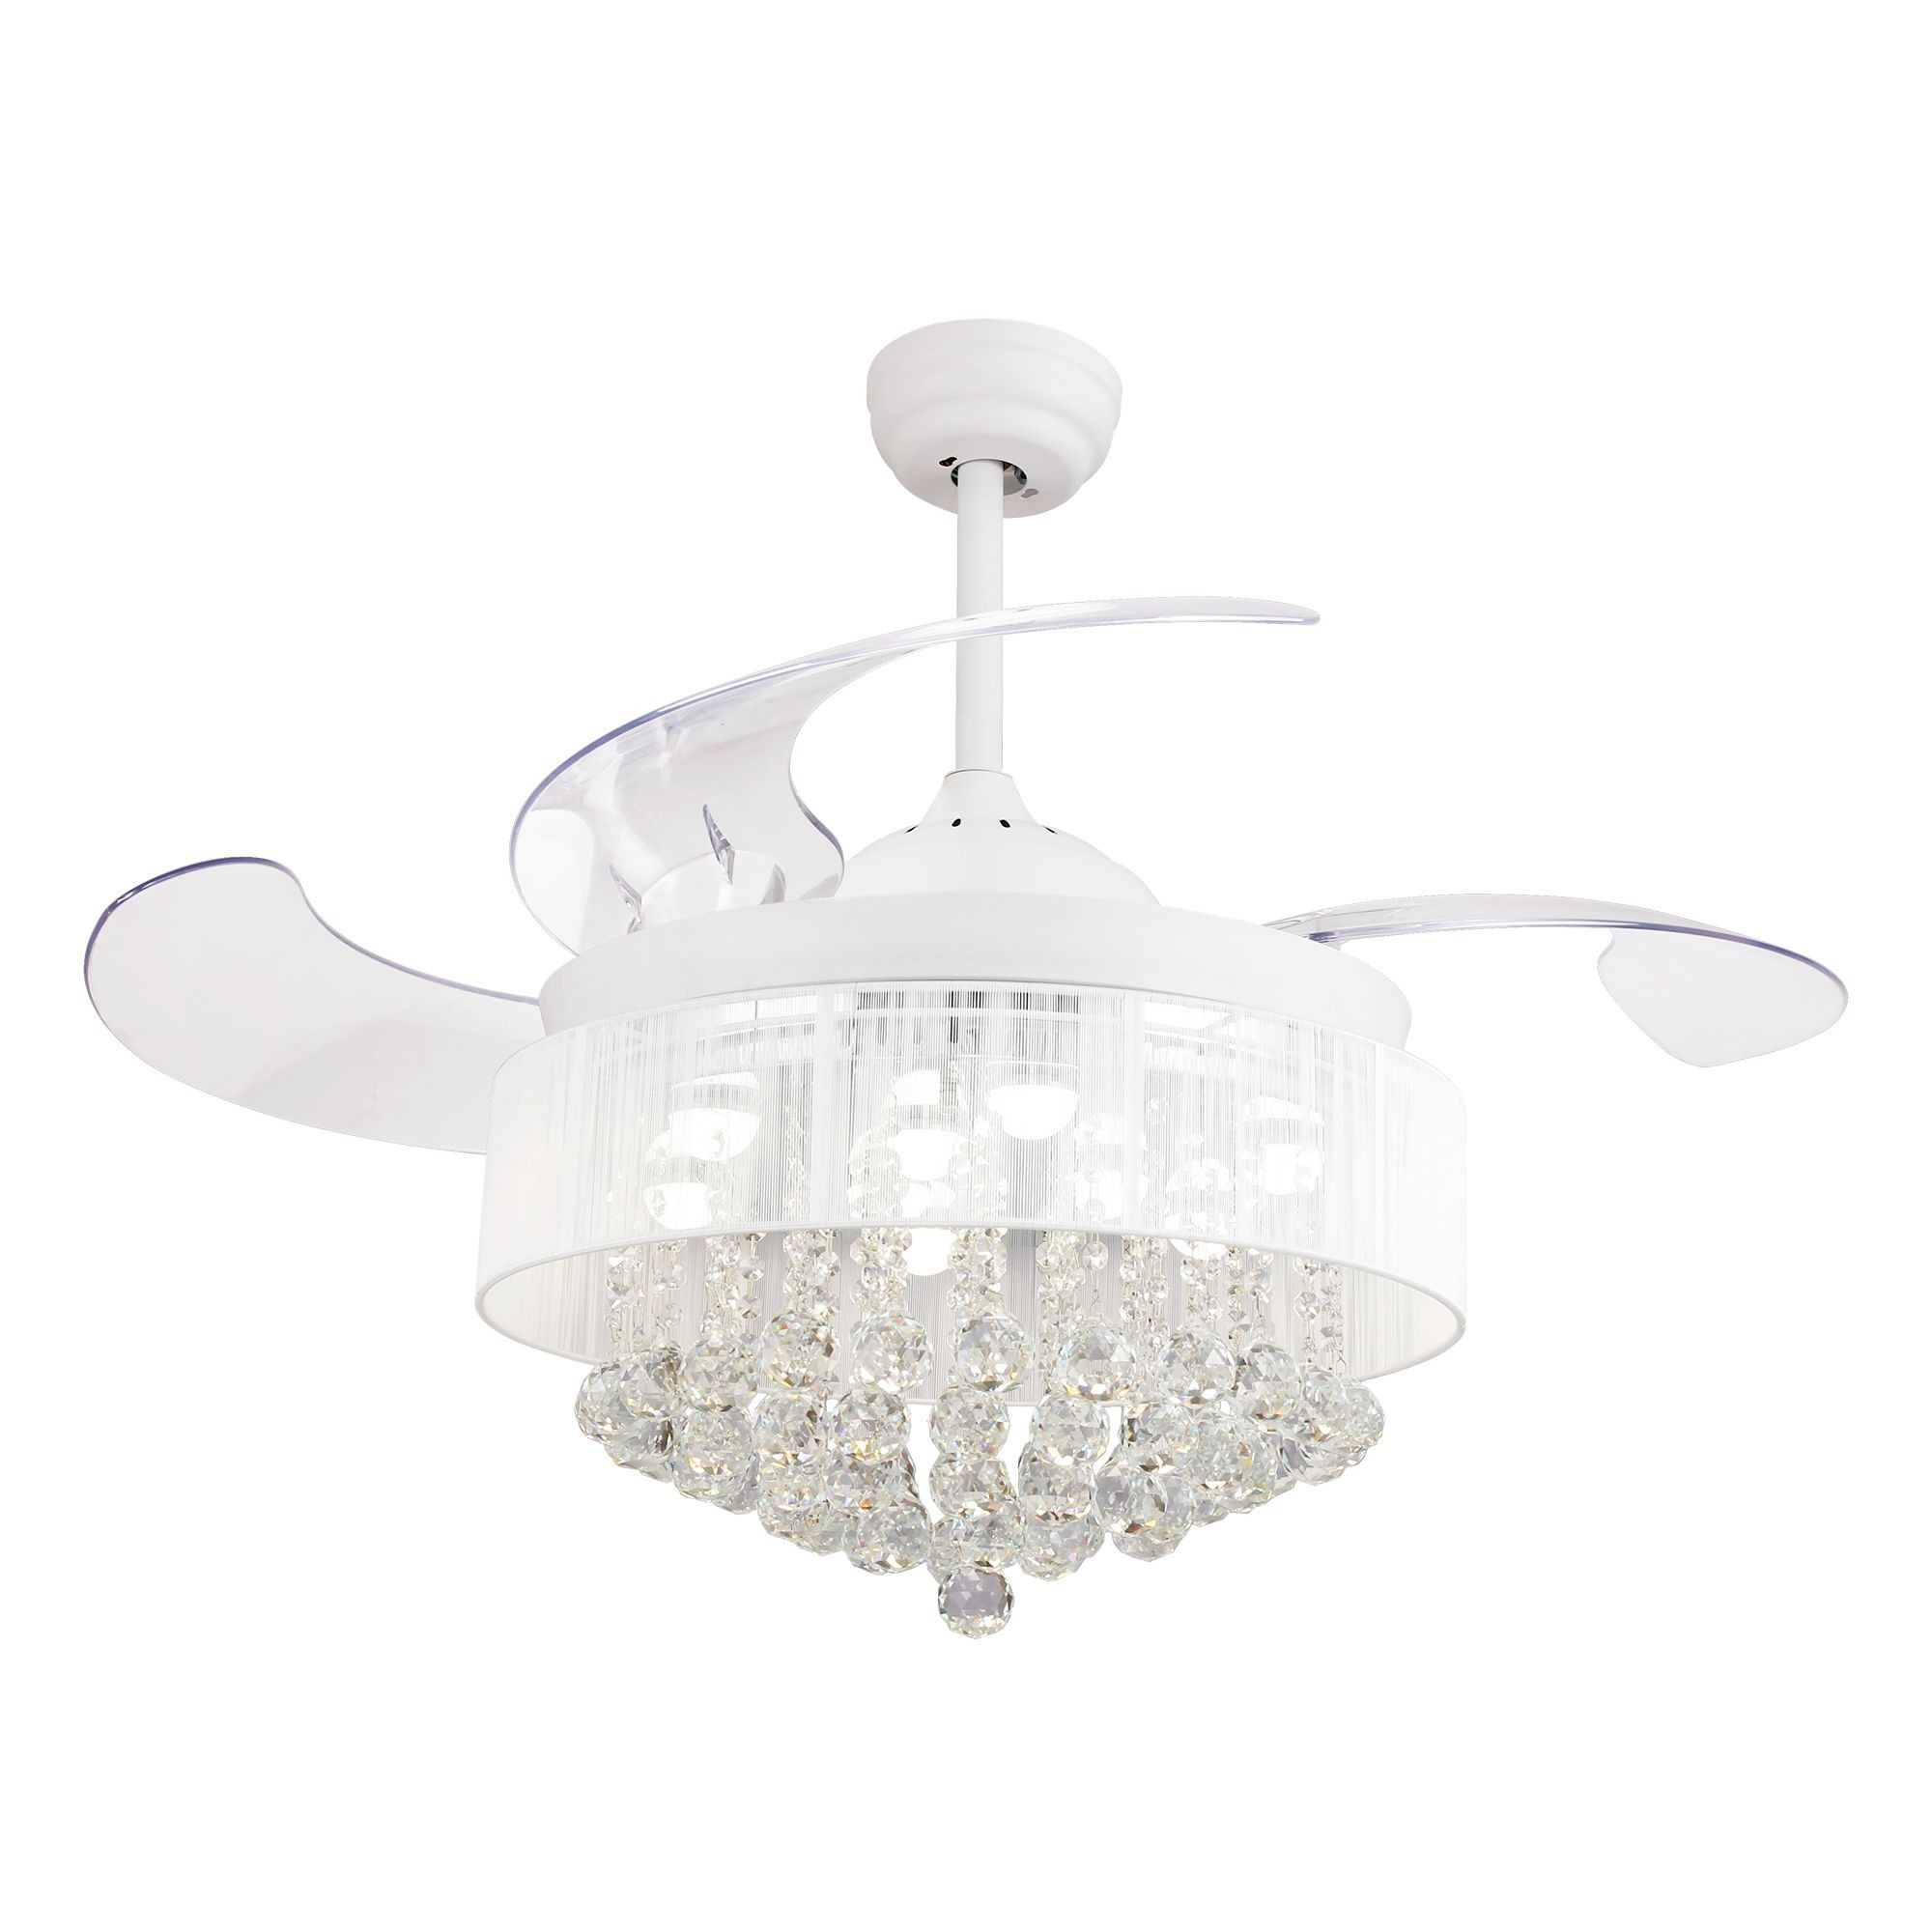 """Broxburne 4 Blade Led Ceiling Fans With Remote Within Famous 46"""" Broxburne Modern Crystal Retractable Ceiling Fan With Led Lights And  Remote Control, White (View 8 of 20)"""